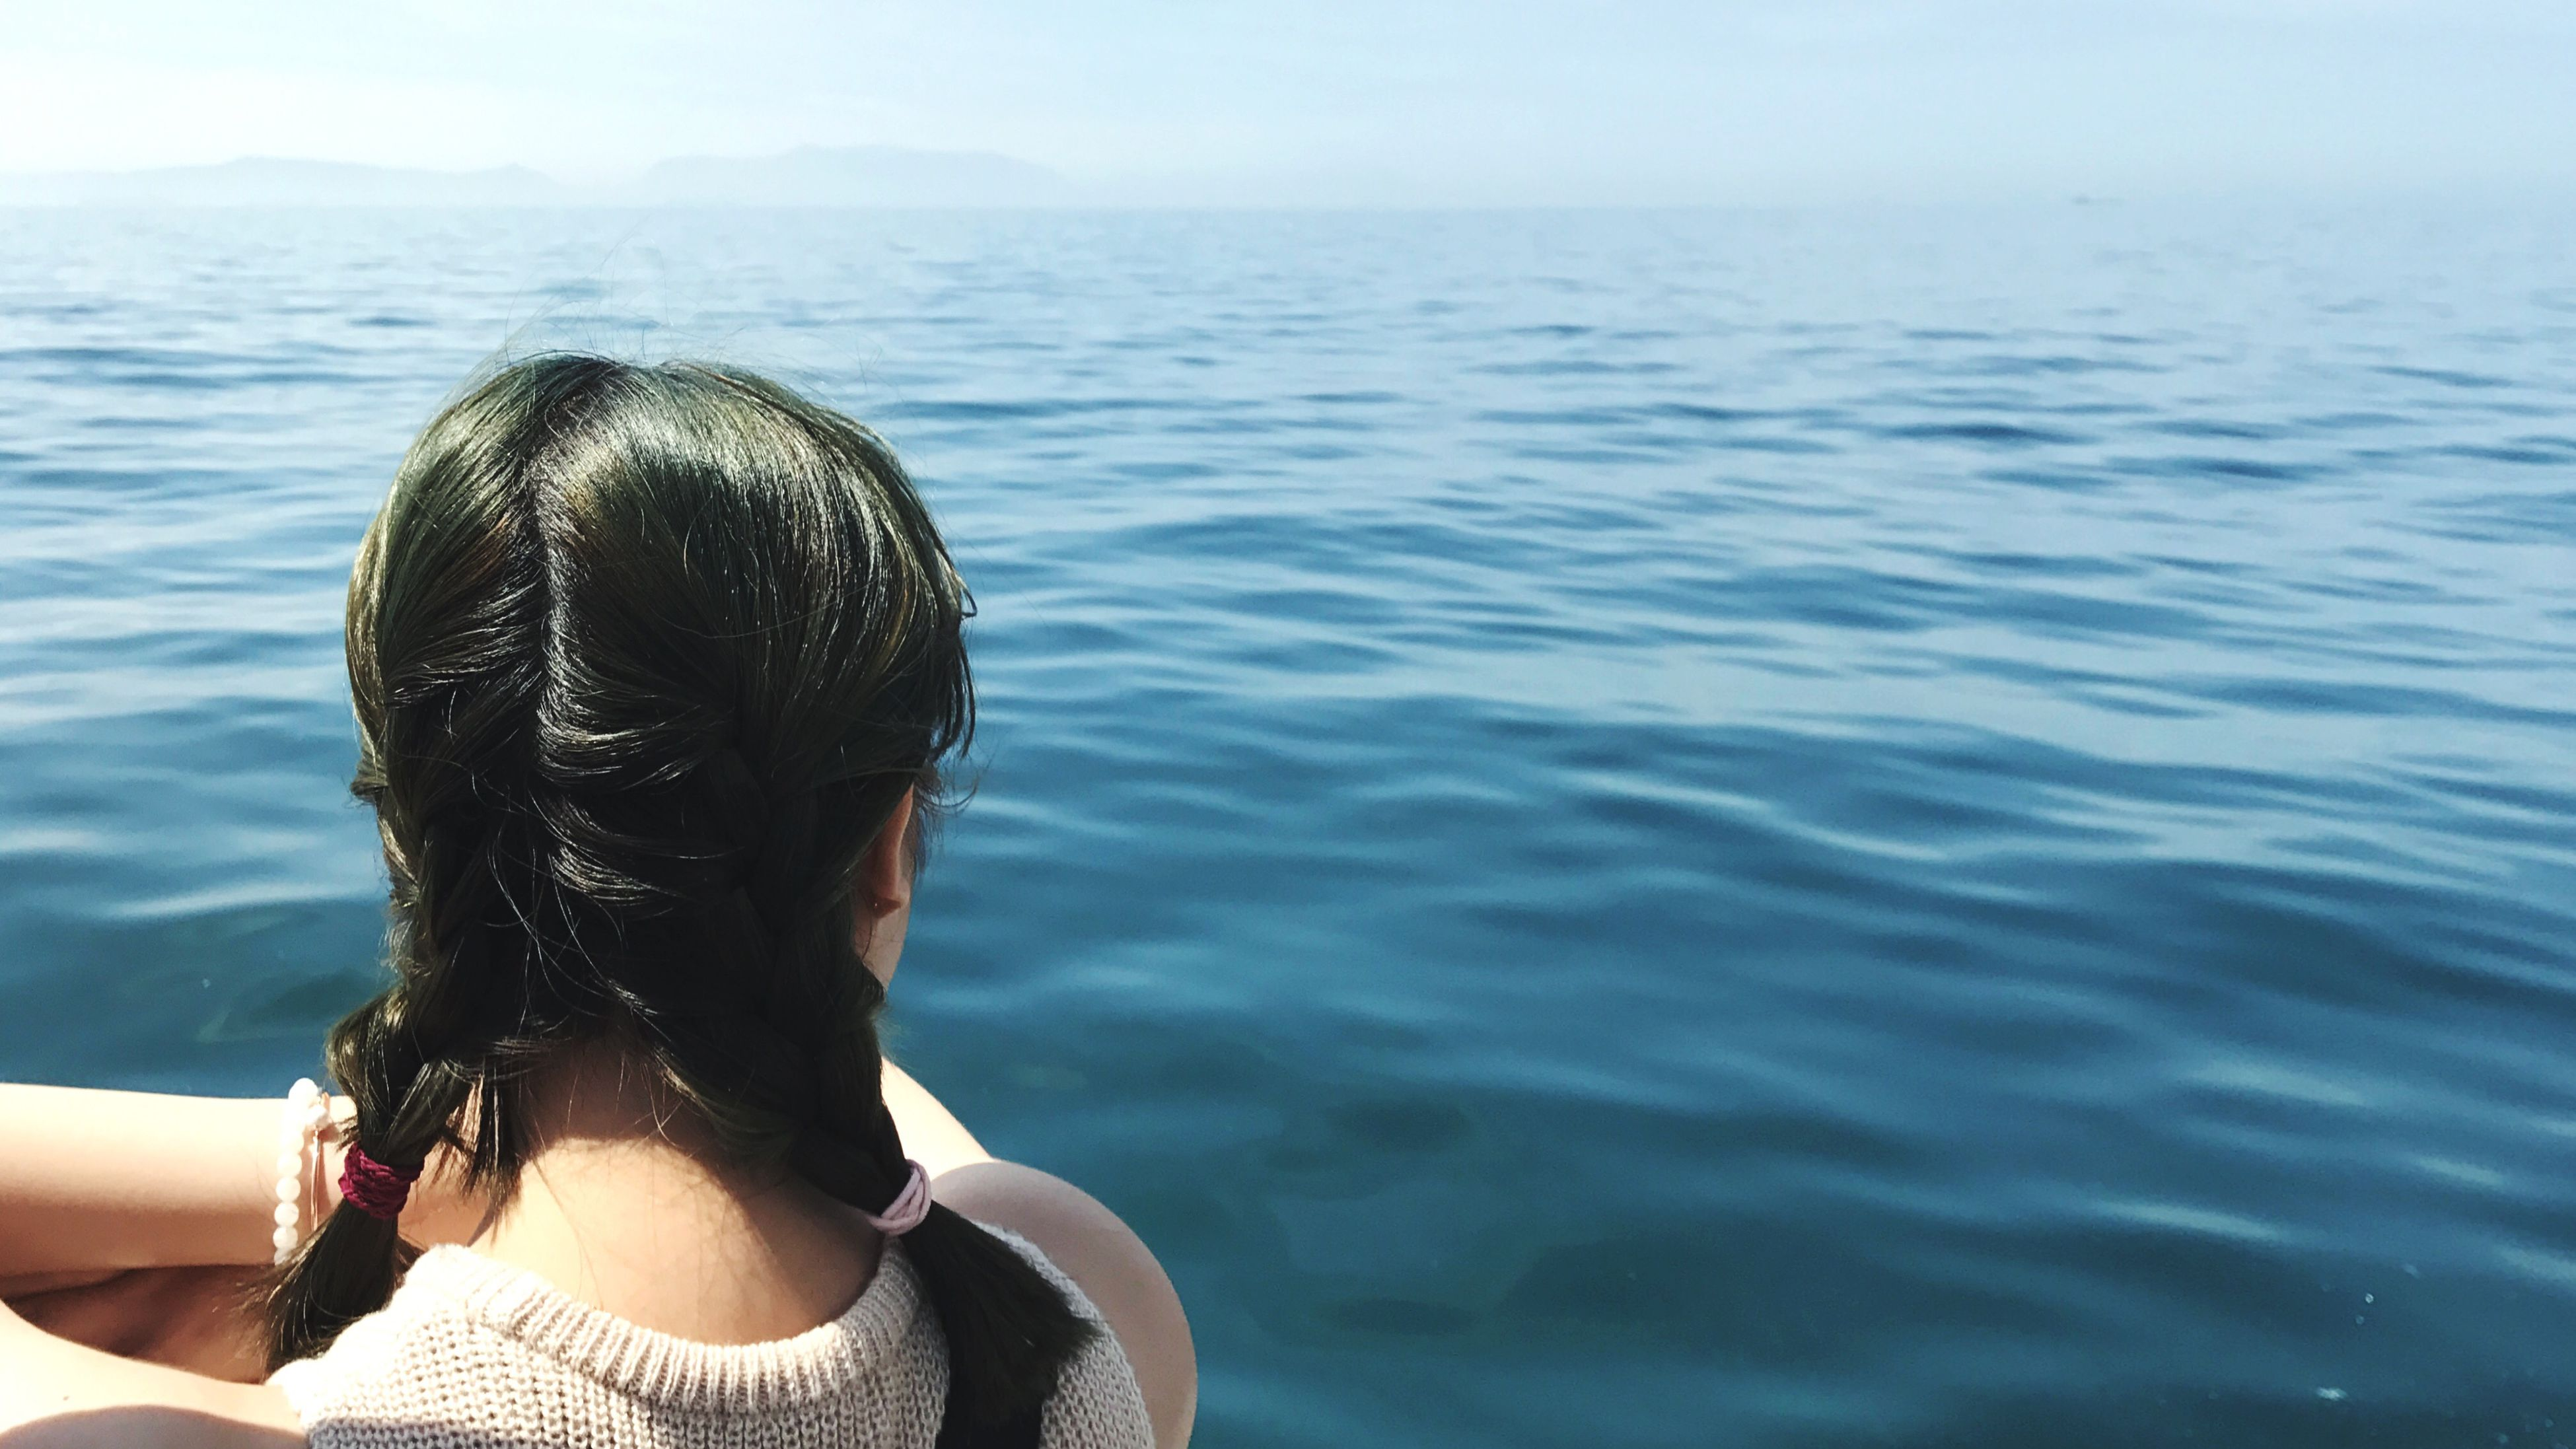 water, one person, lifestyles, sea, real people, leisure activity, rear view, headshot, young adult, day, nature, outdoors, women, sky, young women, close-up, people